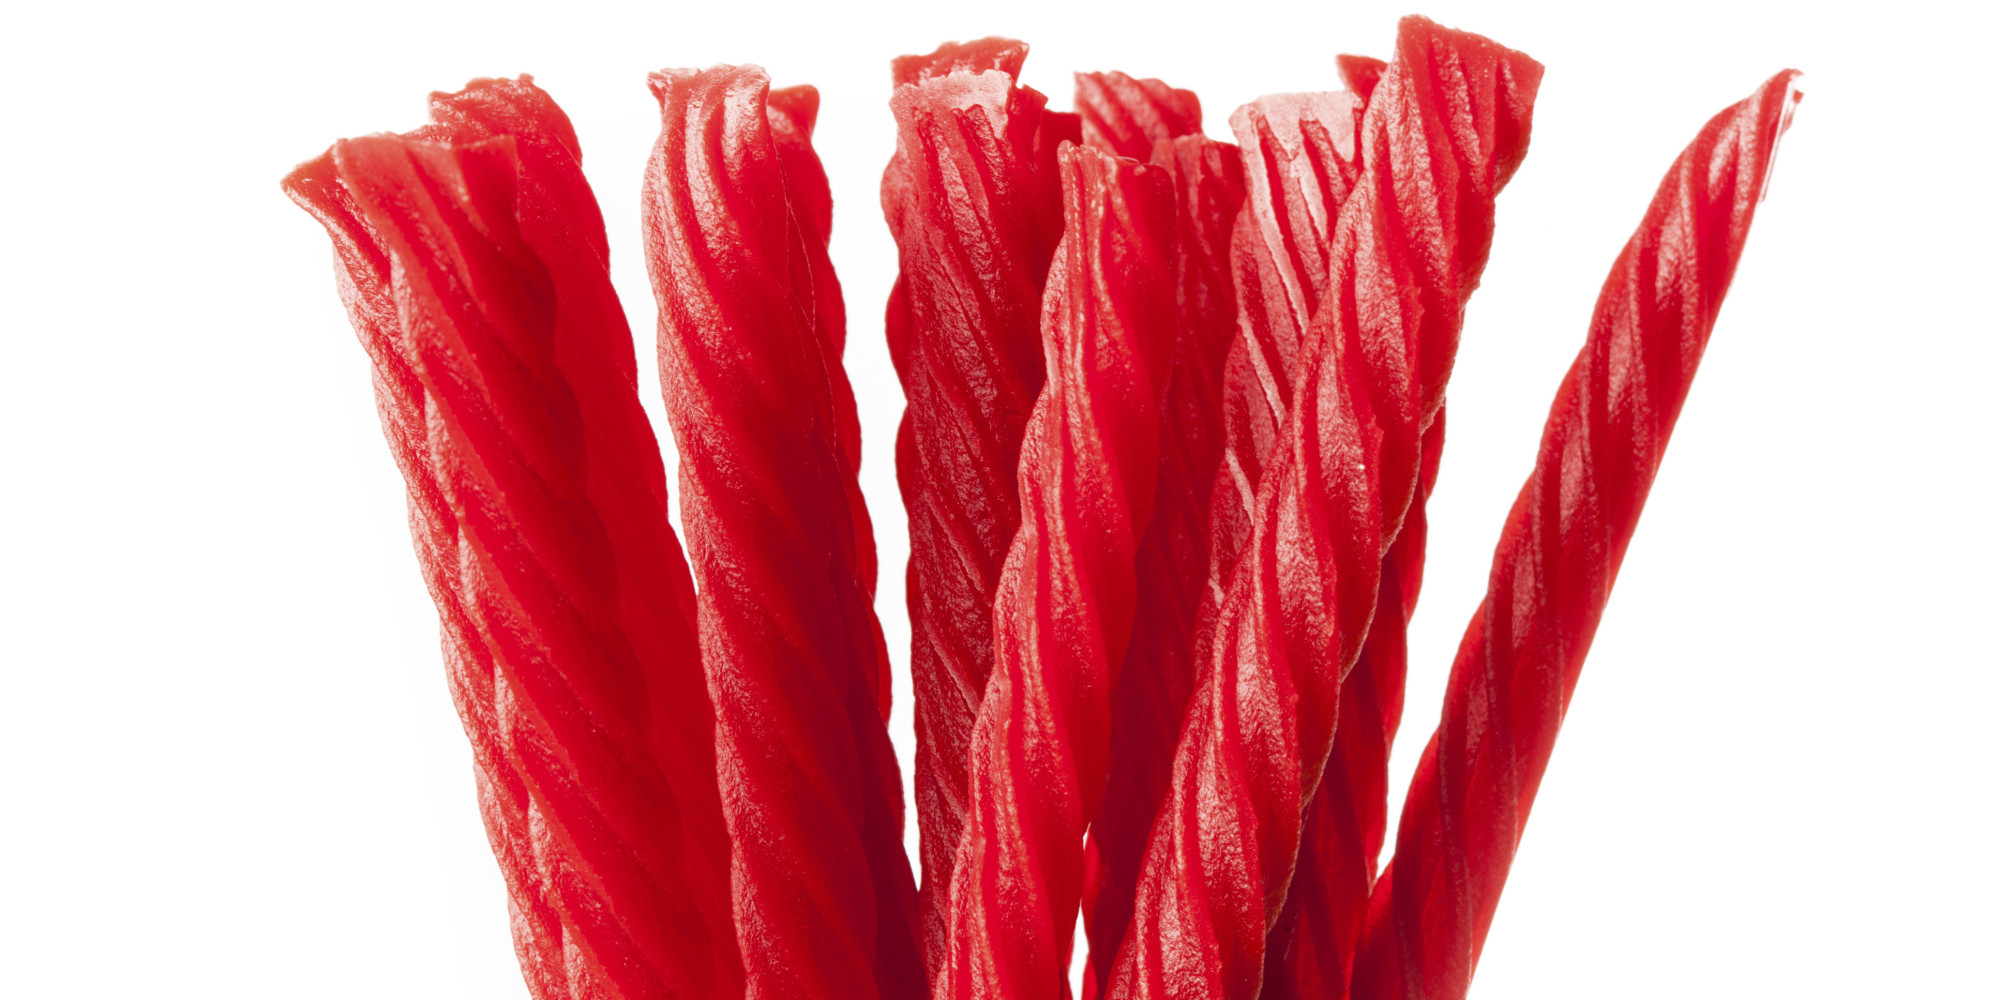 Does licorice cause high blood pressure? | Science Questions with ...